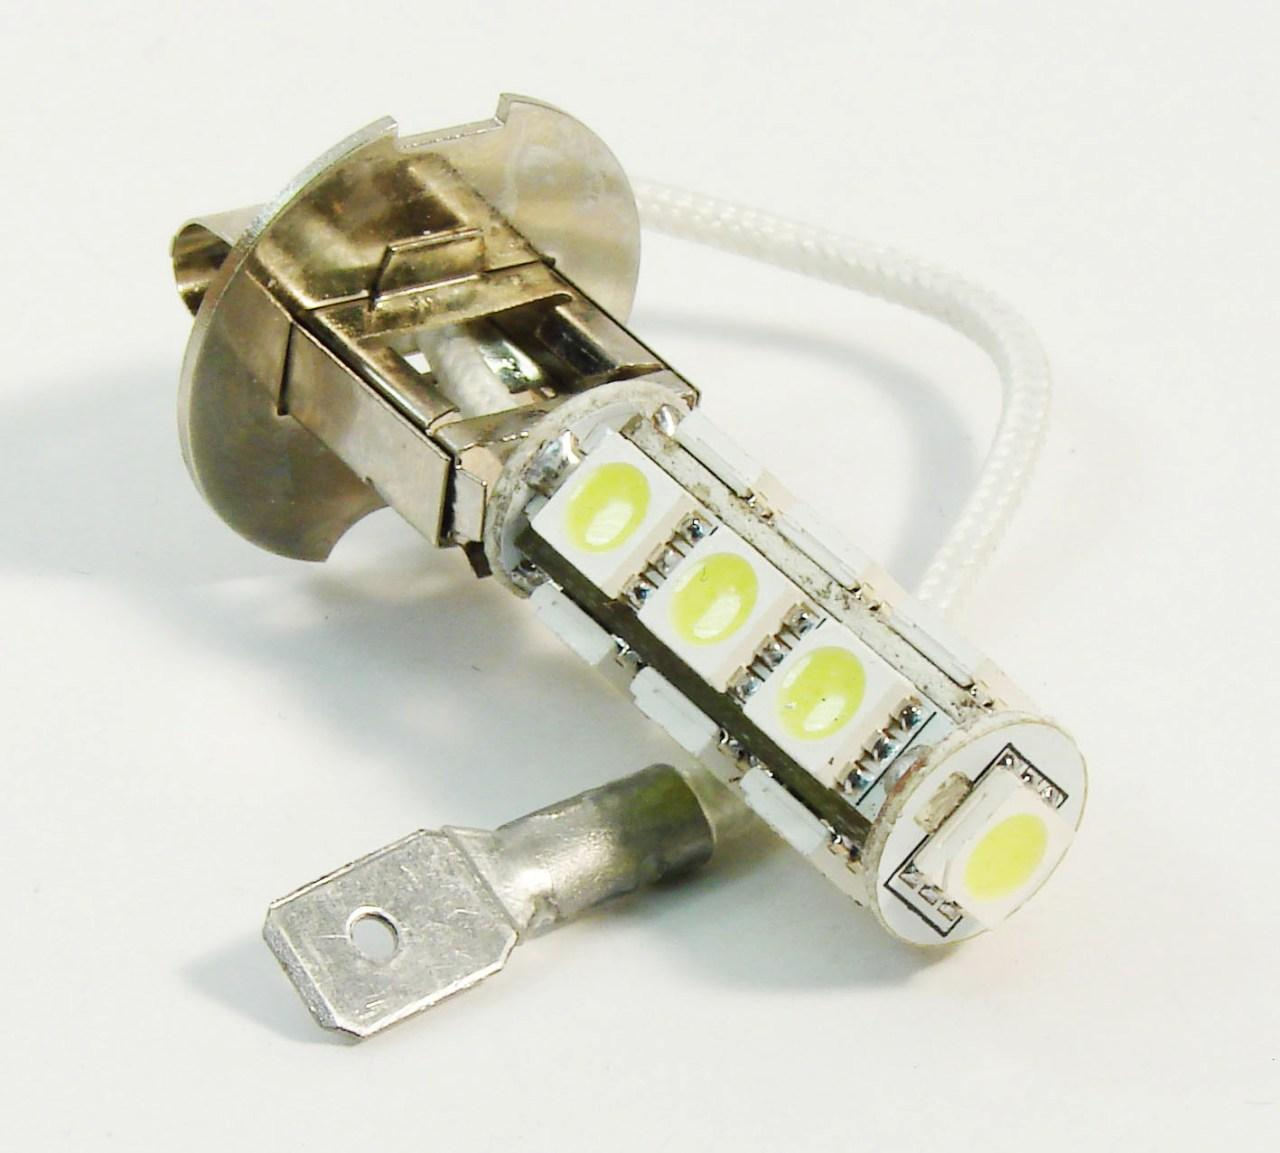 Автолампа светодиодная 13 LED H3 13-5050-SMD LED Car Front Head Fog Light Headlight Bulb Pure White